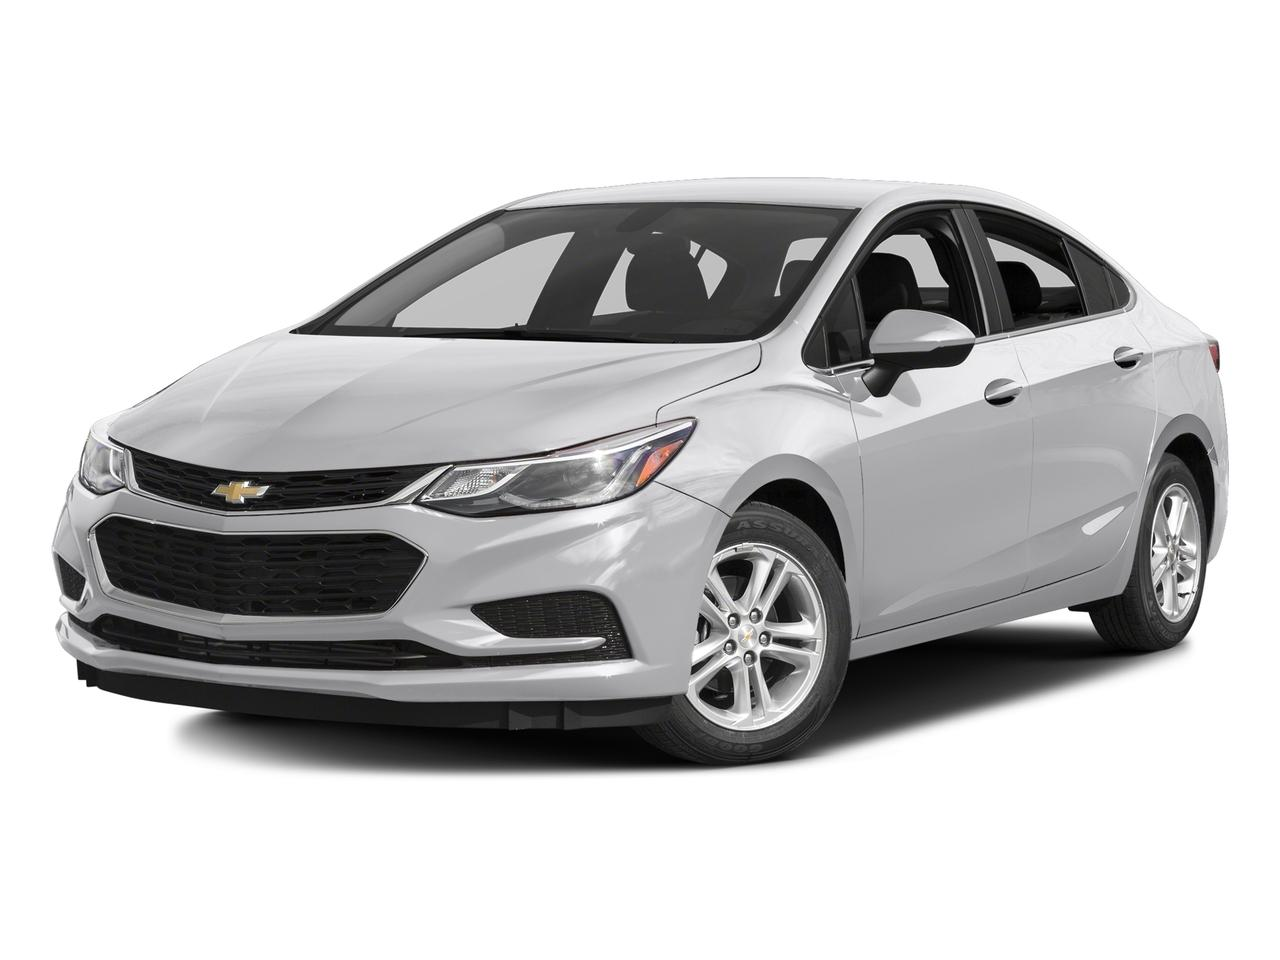 2017 Chevrolet Cruze Vehicle Photo in Westlake, OH 44145